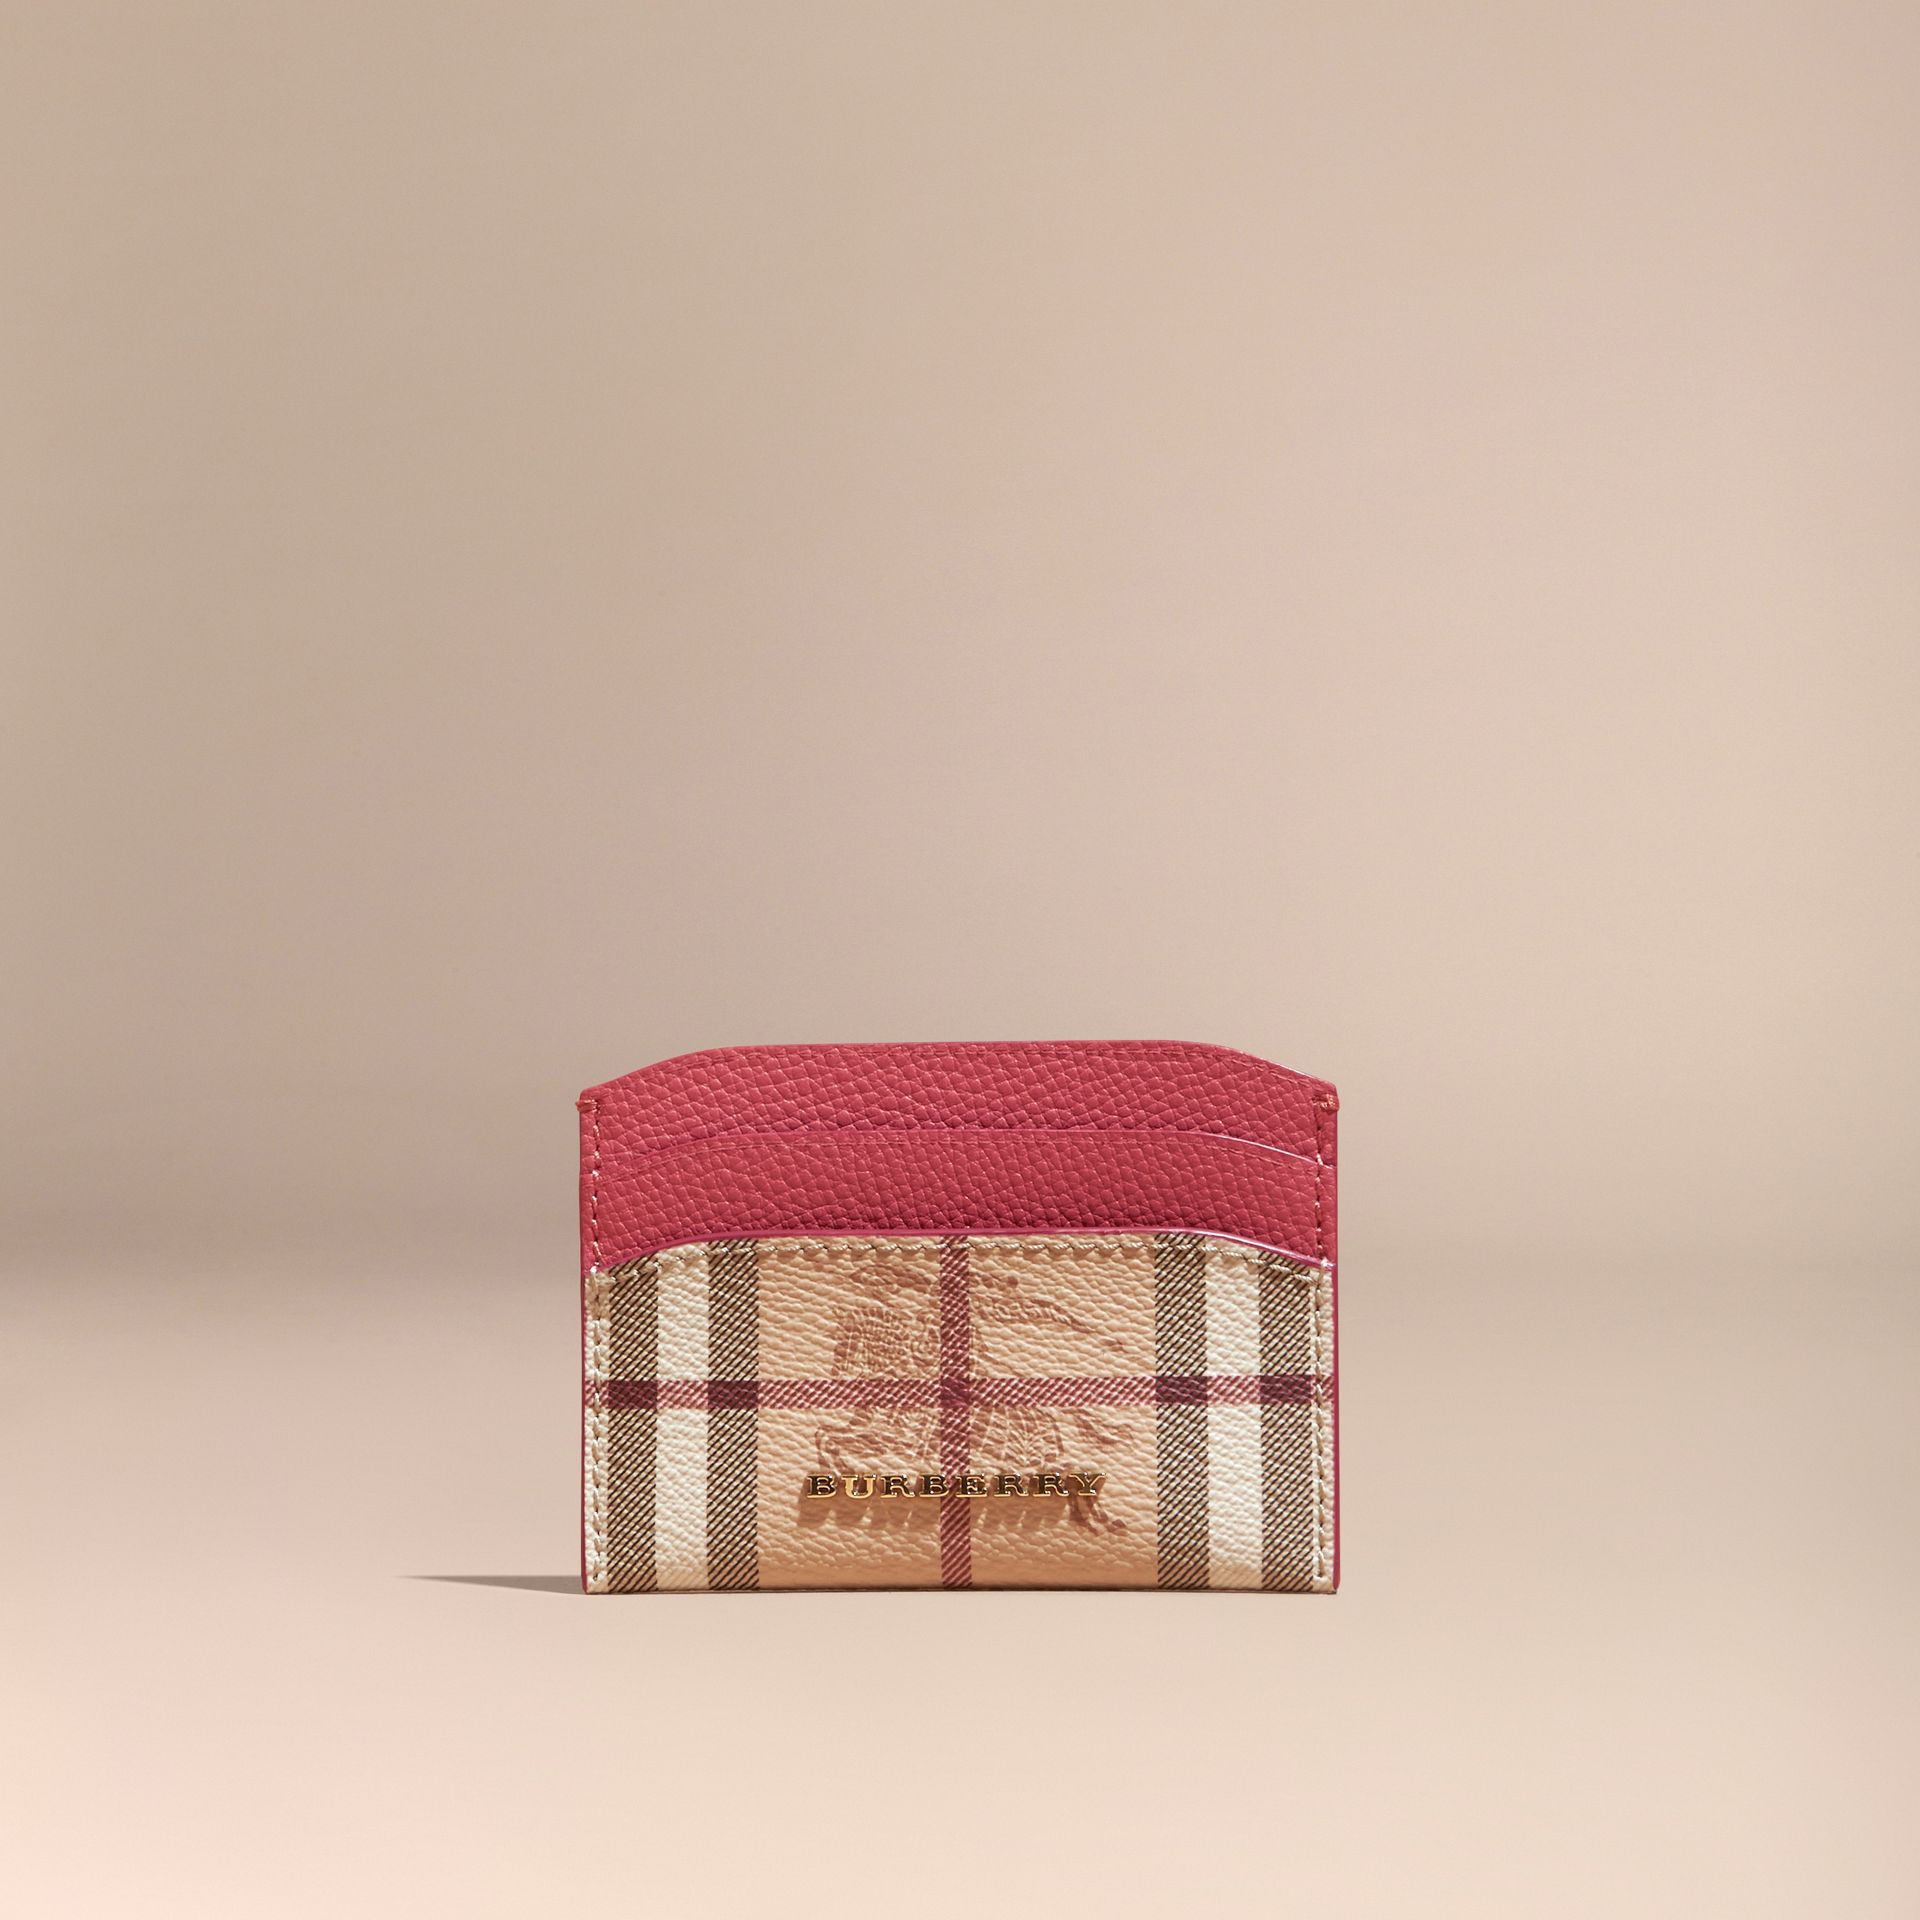 Haymarket Check and Leather Card Case in Plum Pink - Women | Burberry - gallery image 6